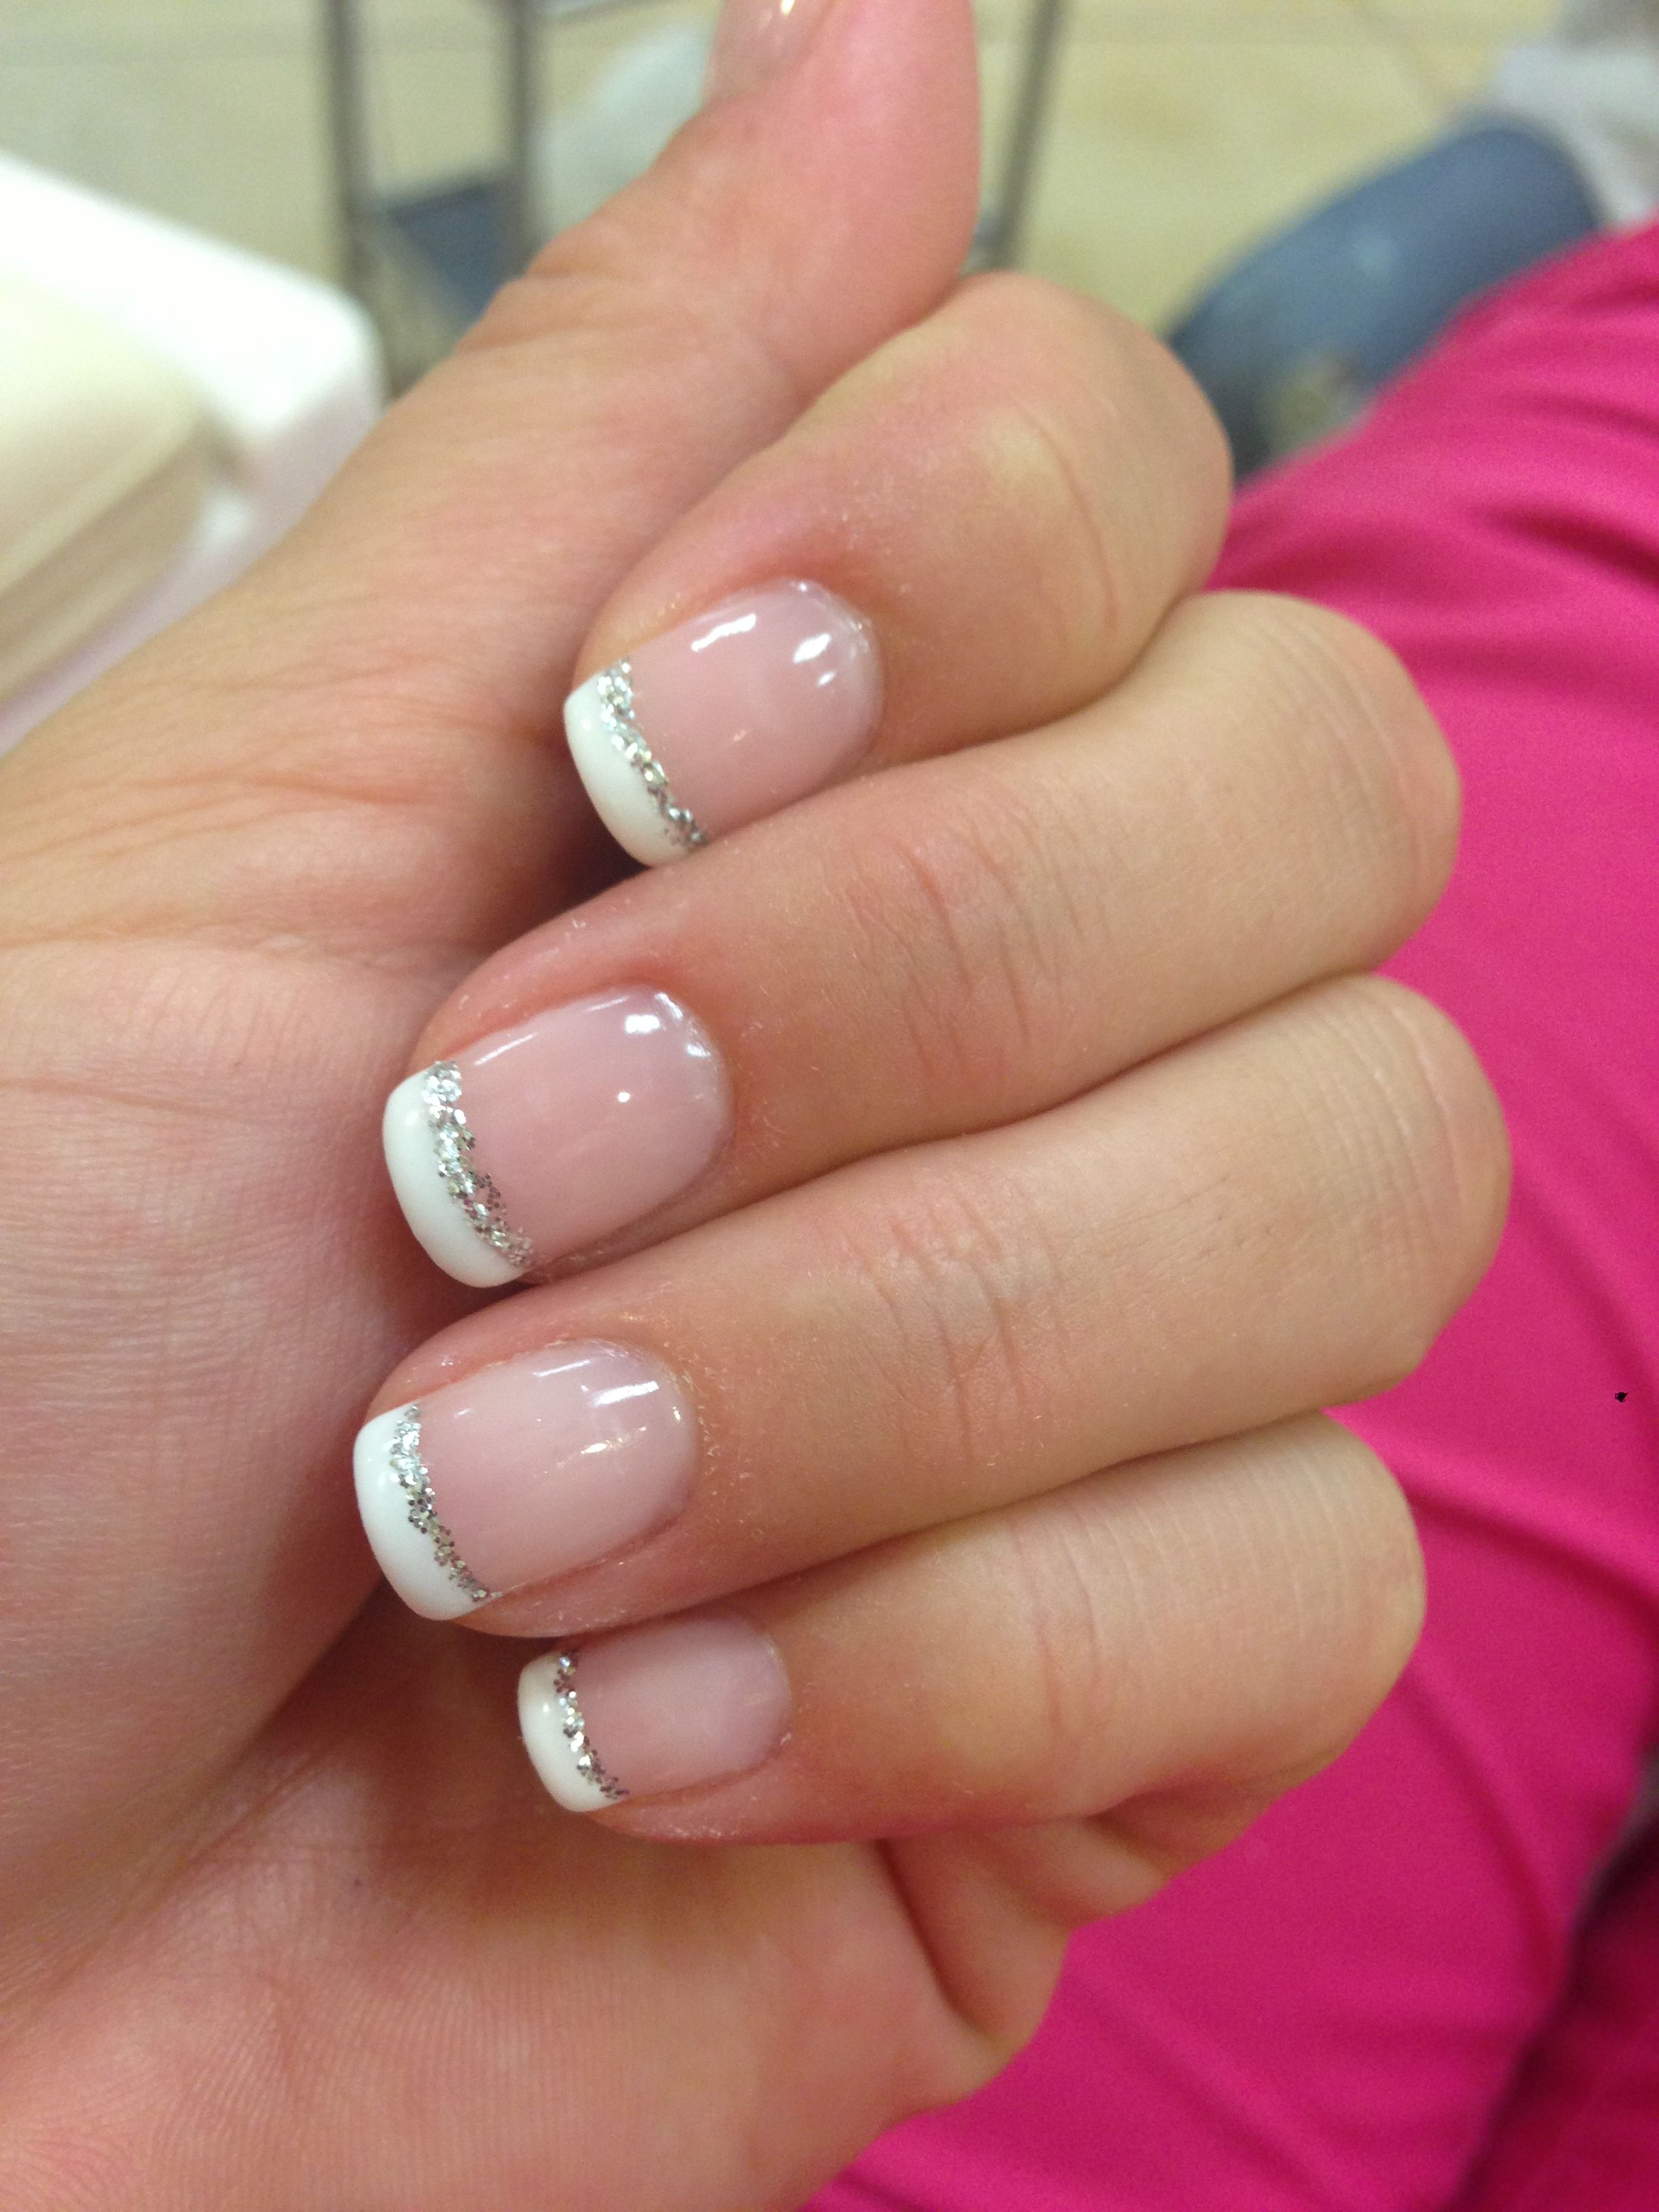 My wedding nails | Beauty | Pinterest | Weddings, Nail french and ...